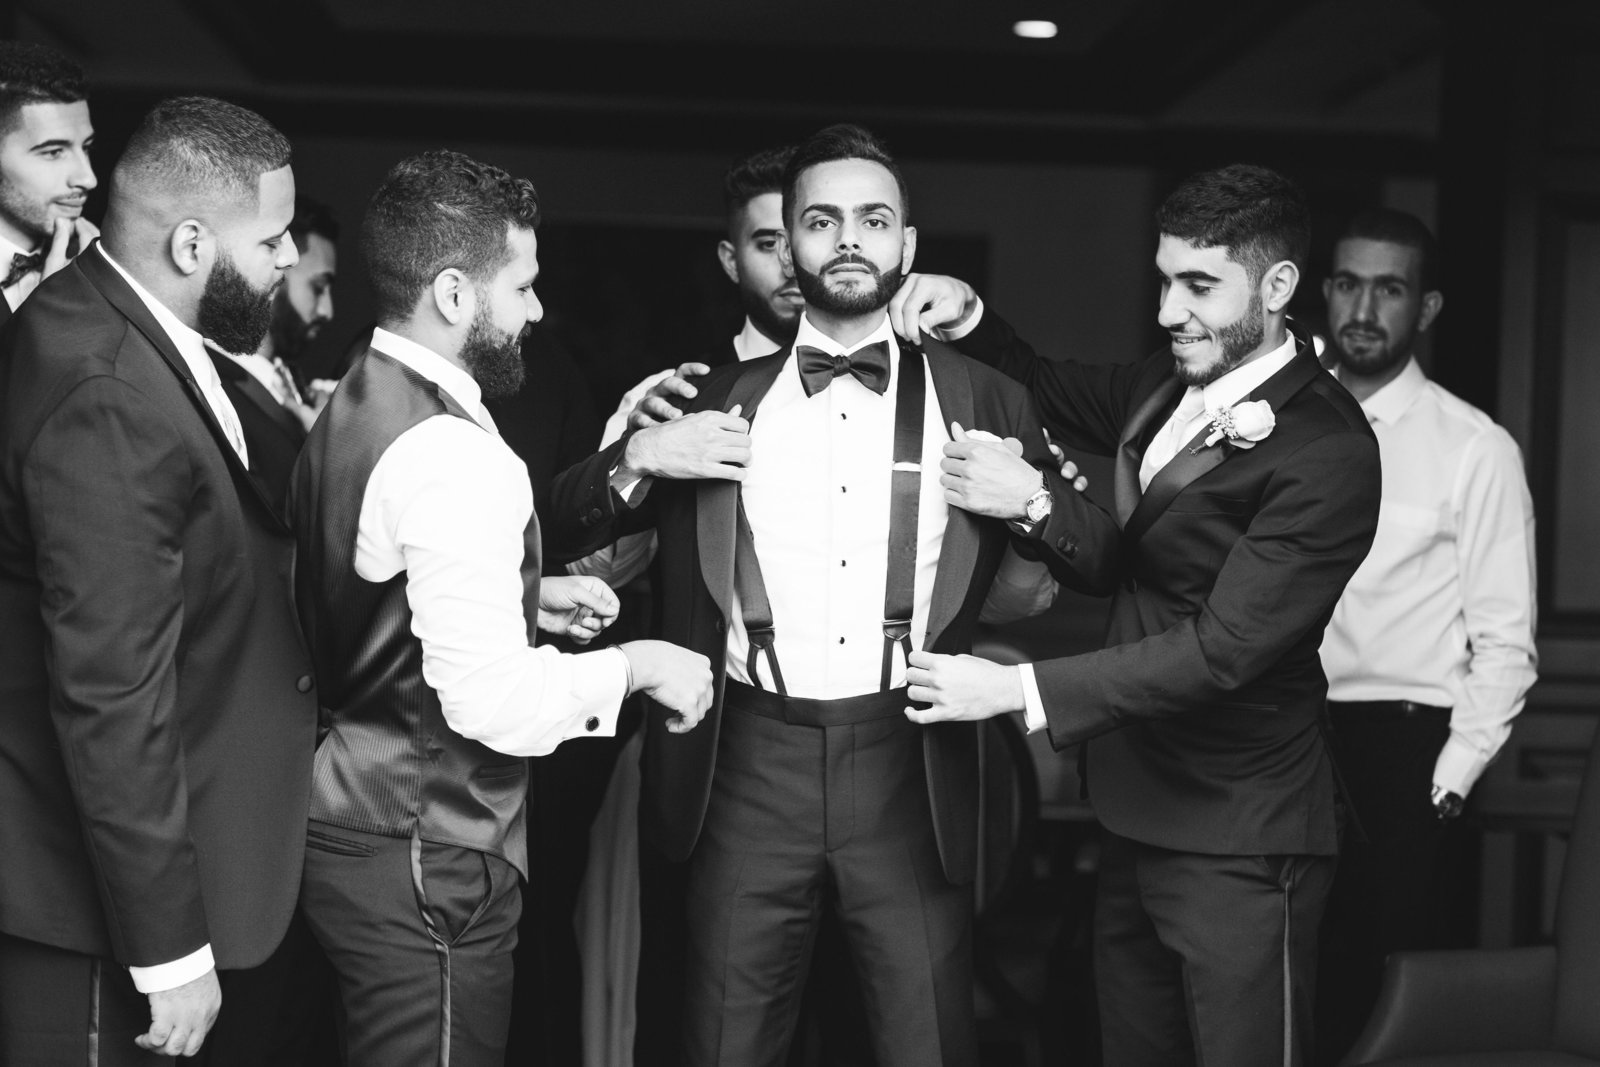 Noor & Ahmad Vinoy Renaissance Wedding in St. Petersburg by Ledia Tashi Photography